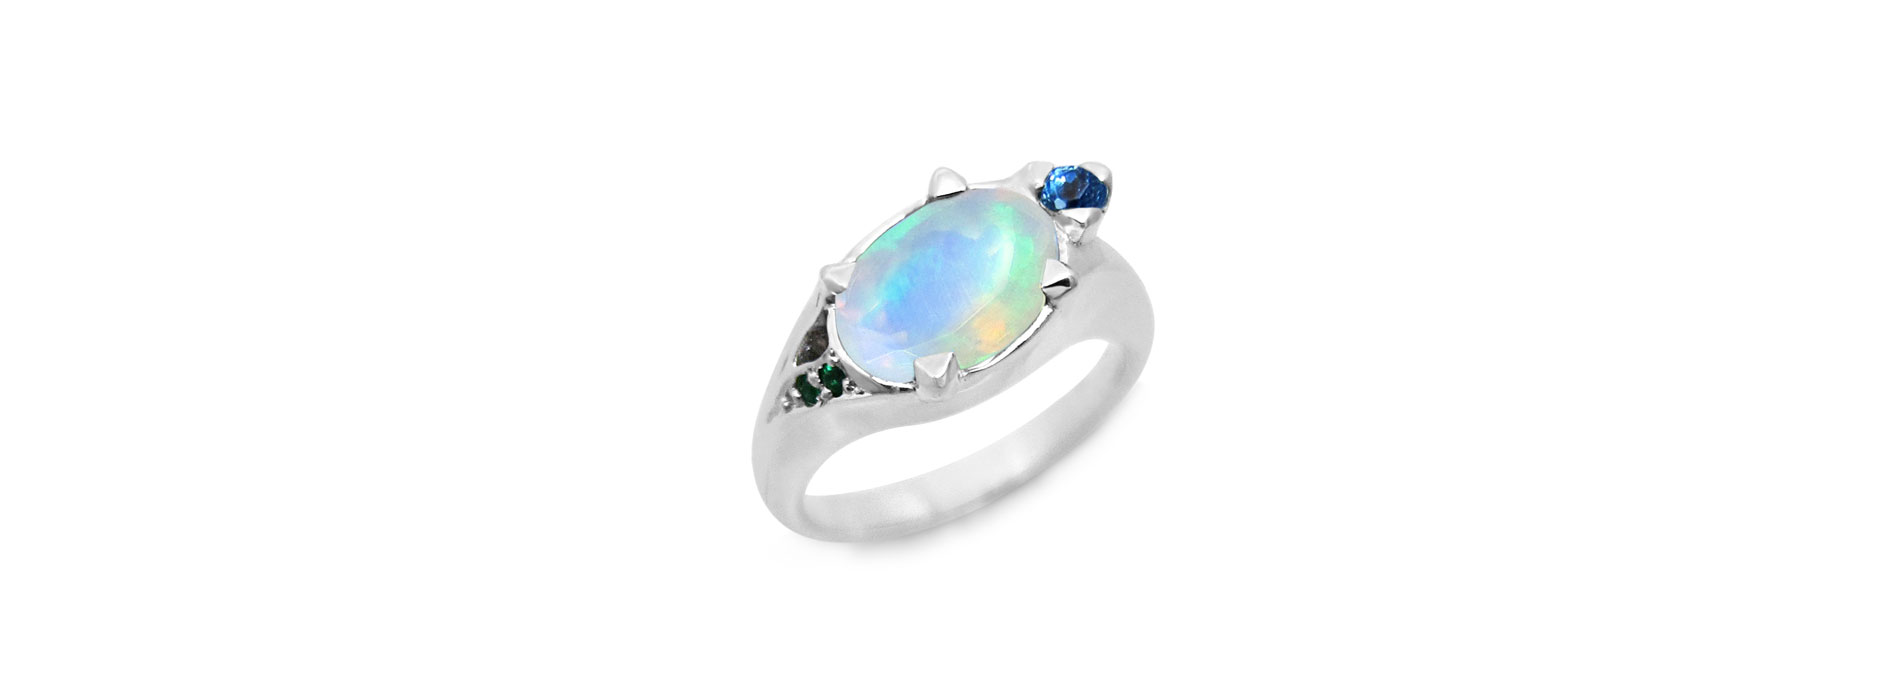 White gold turtle ring with opal, emeralds and blue topaz